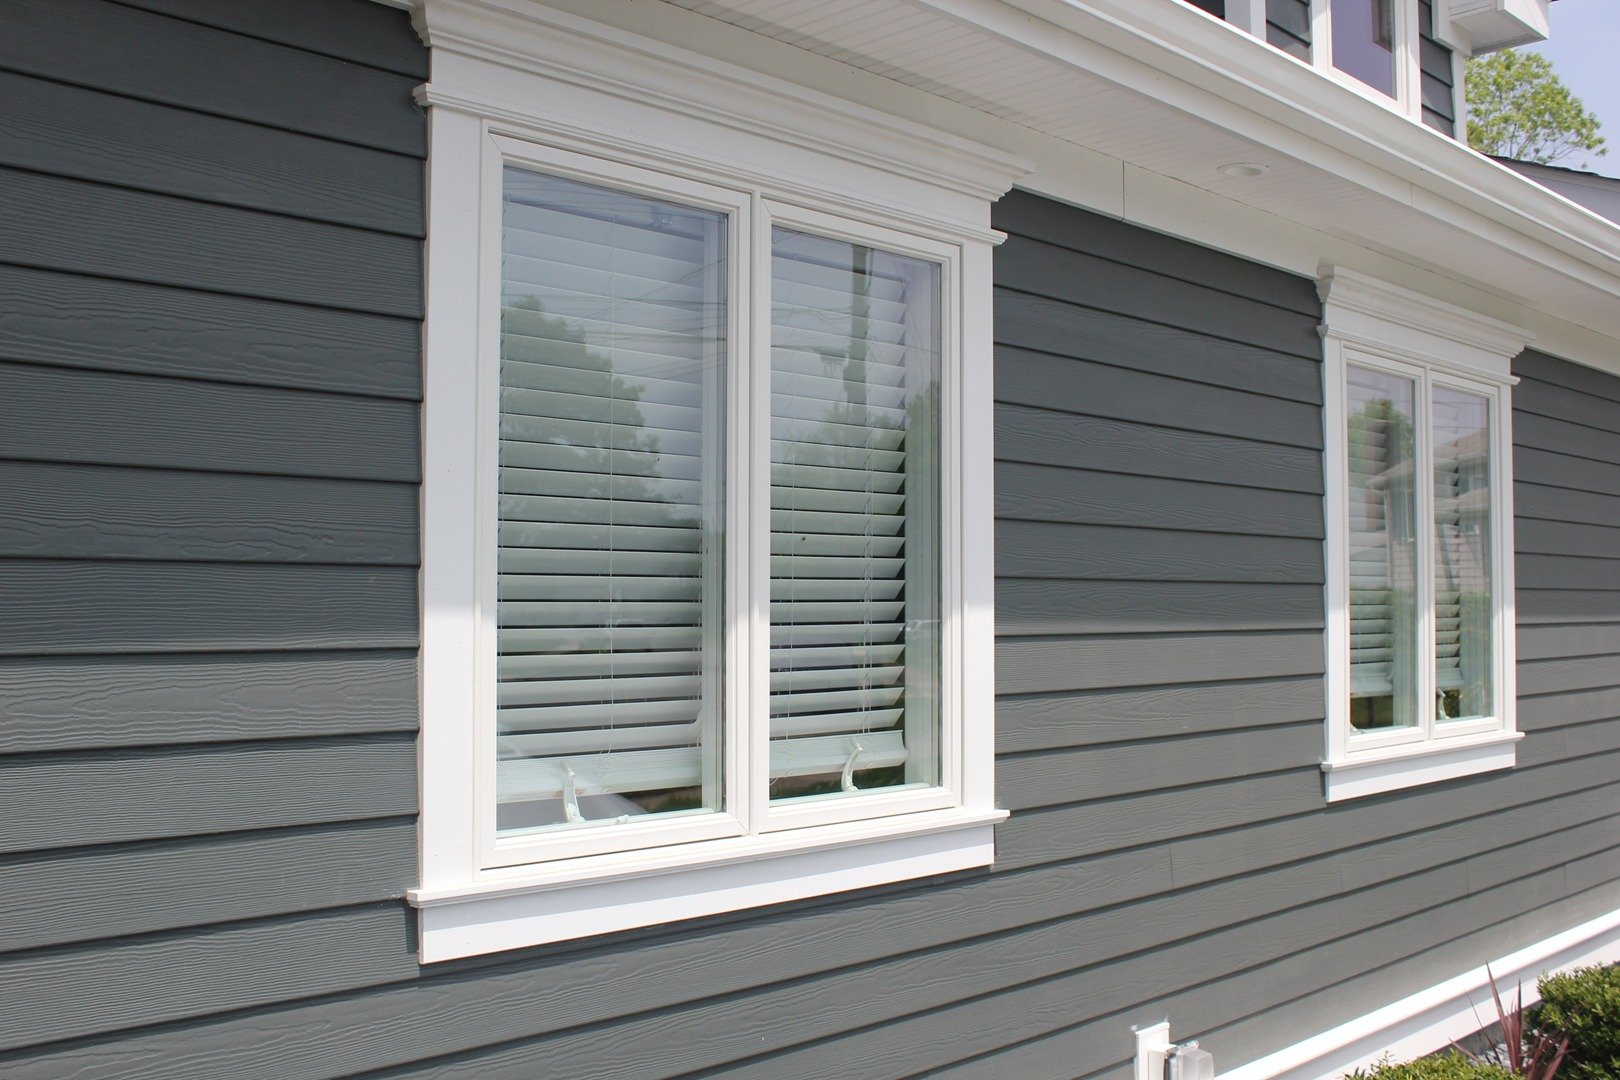 How Much Does Fiber Cement Siding Cost?